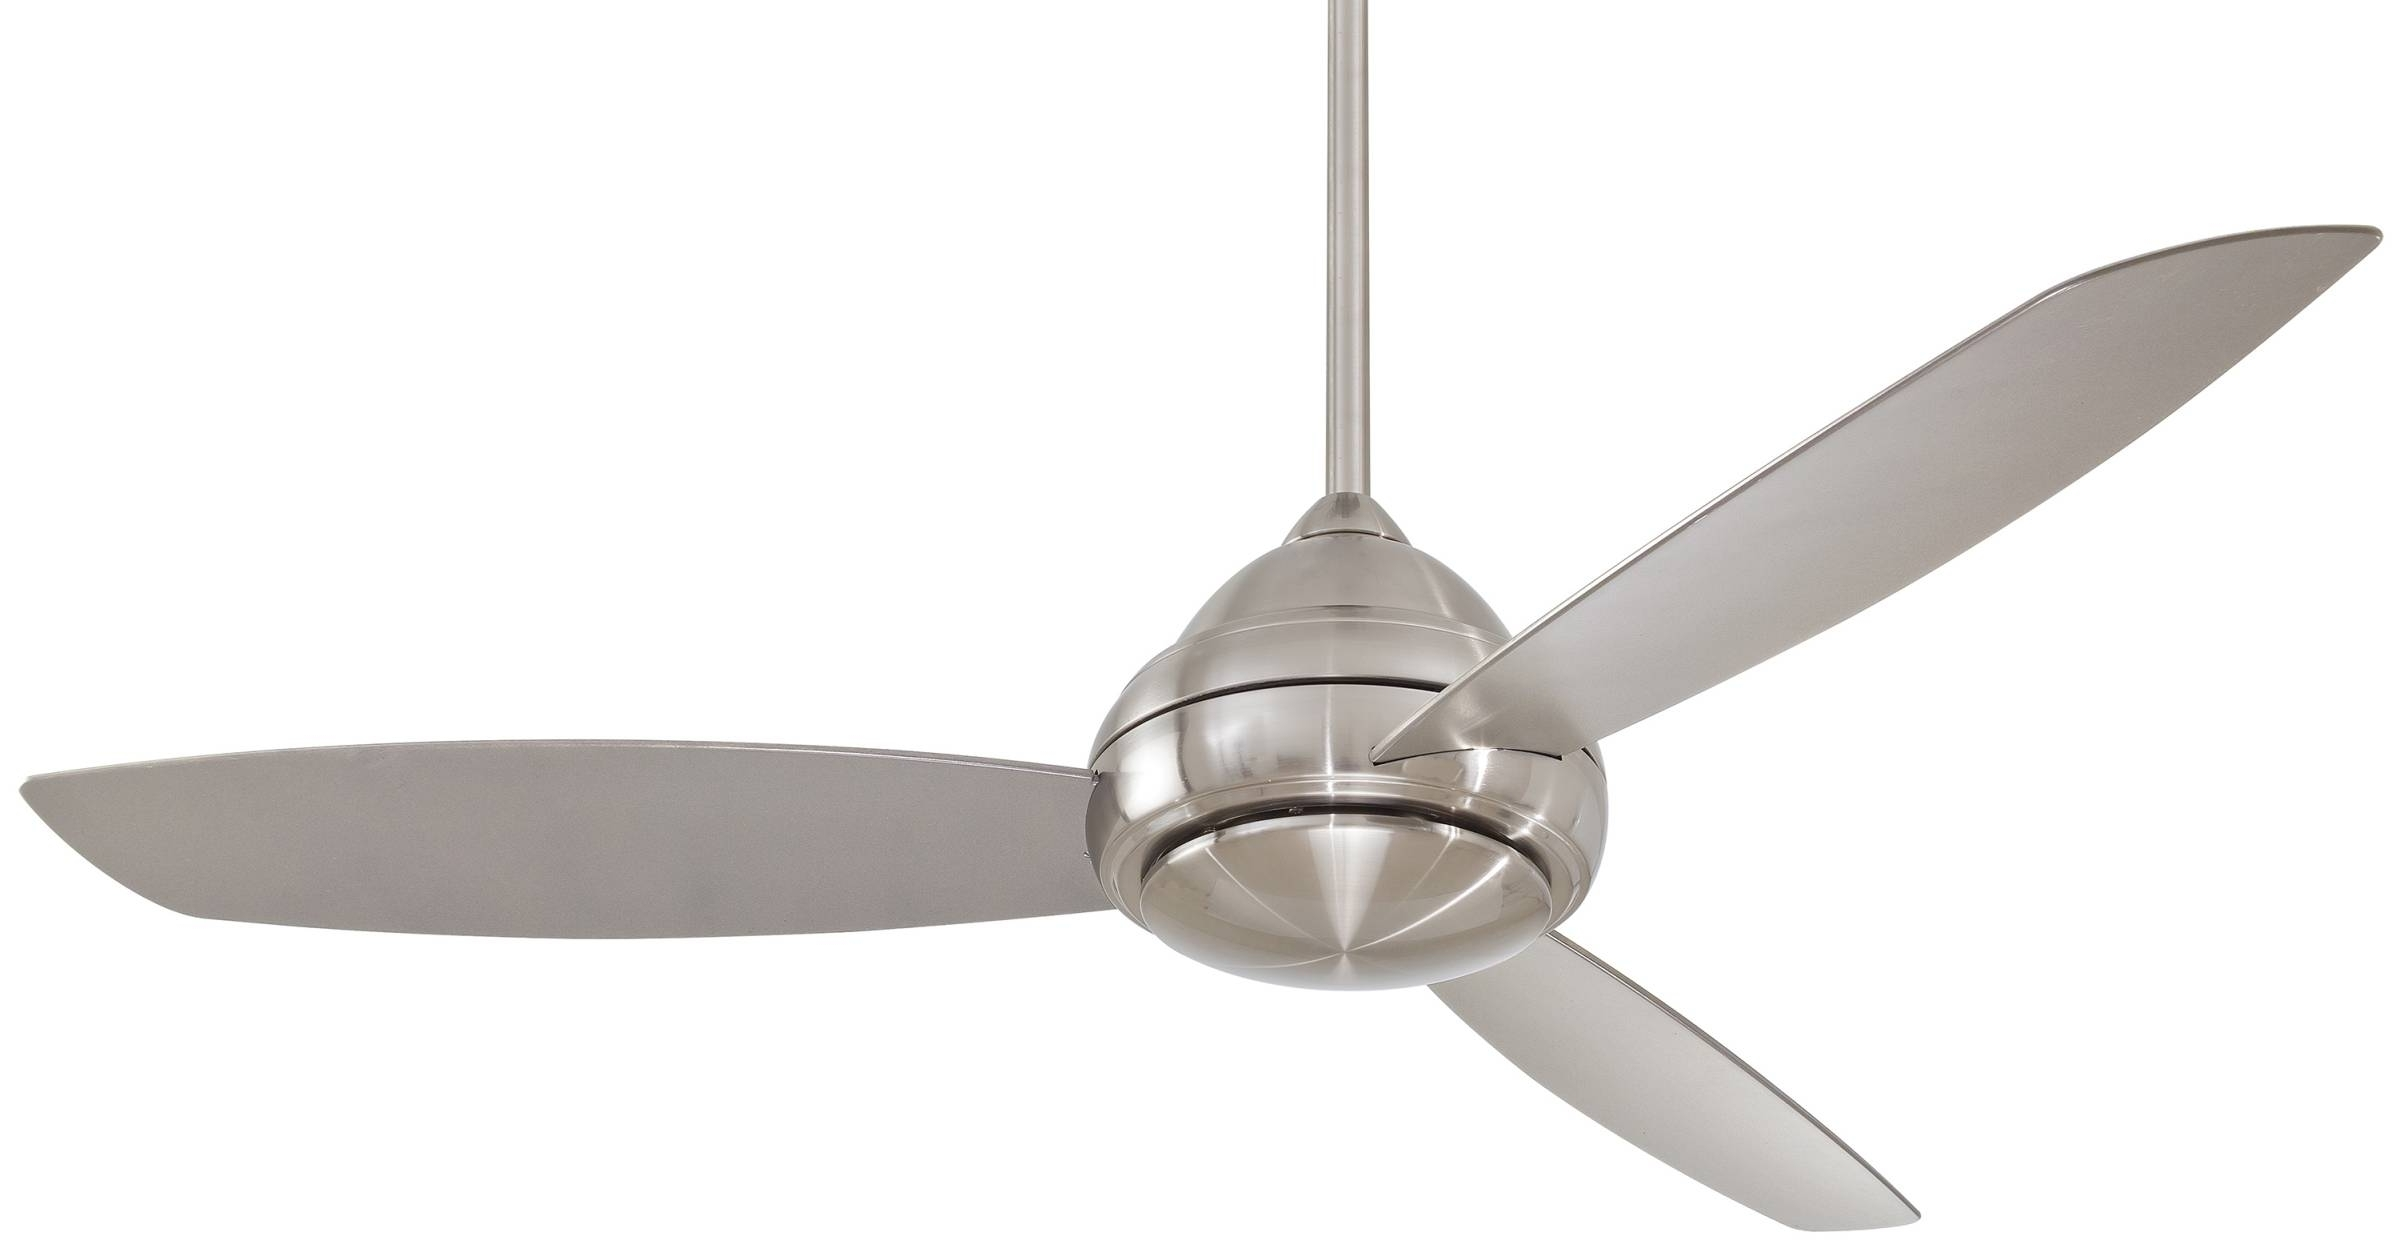 Warisan Intended For Most Current Outdoor Ceiling Fans With Metal Blades (View 18 of 20)